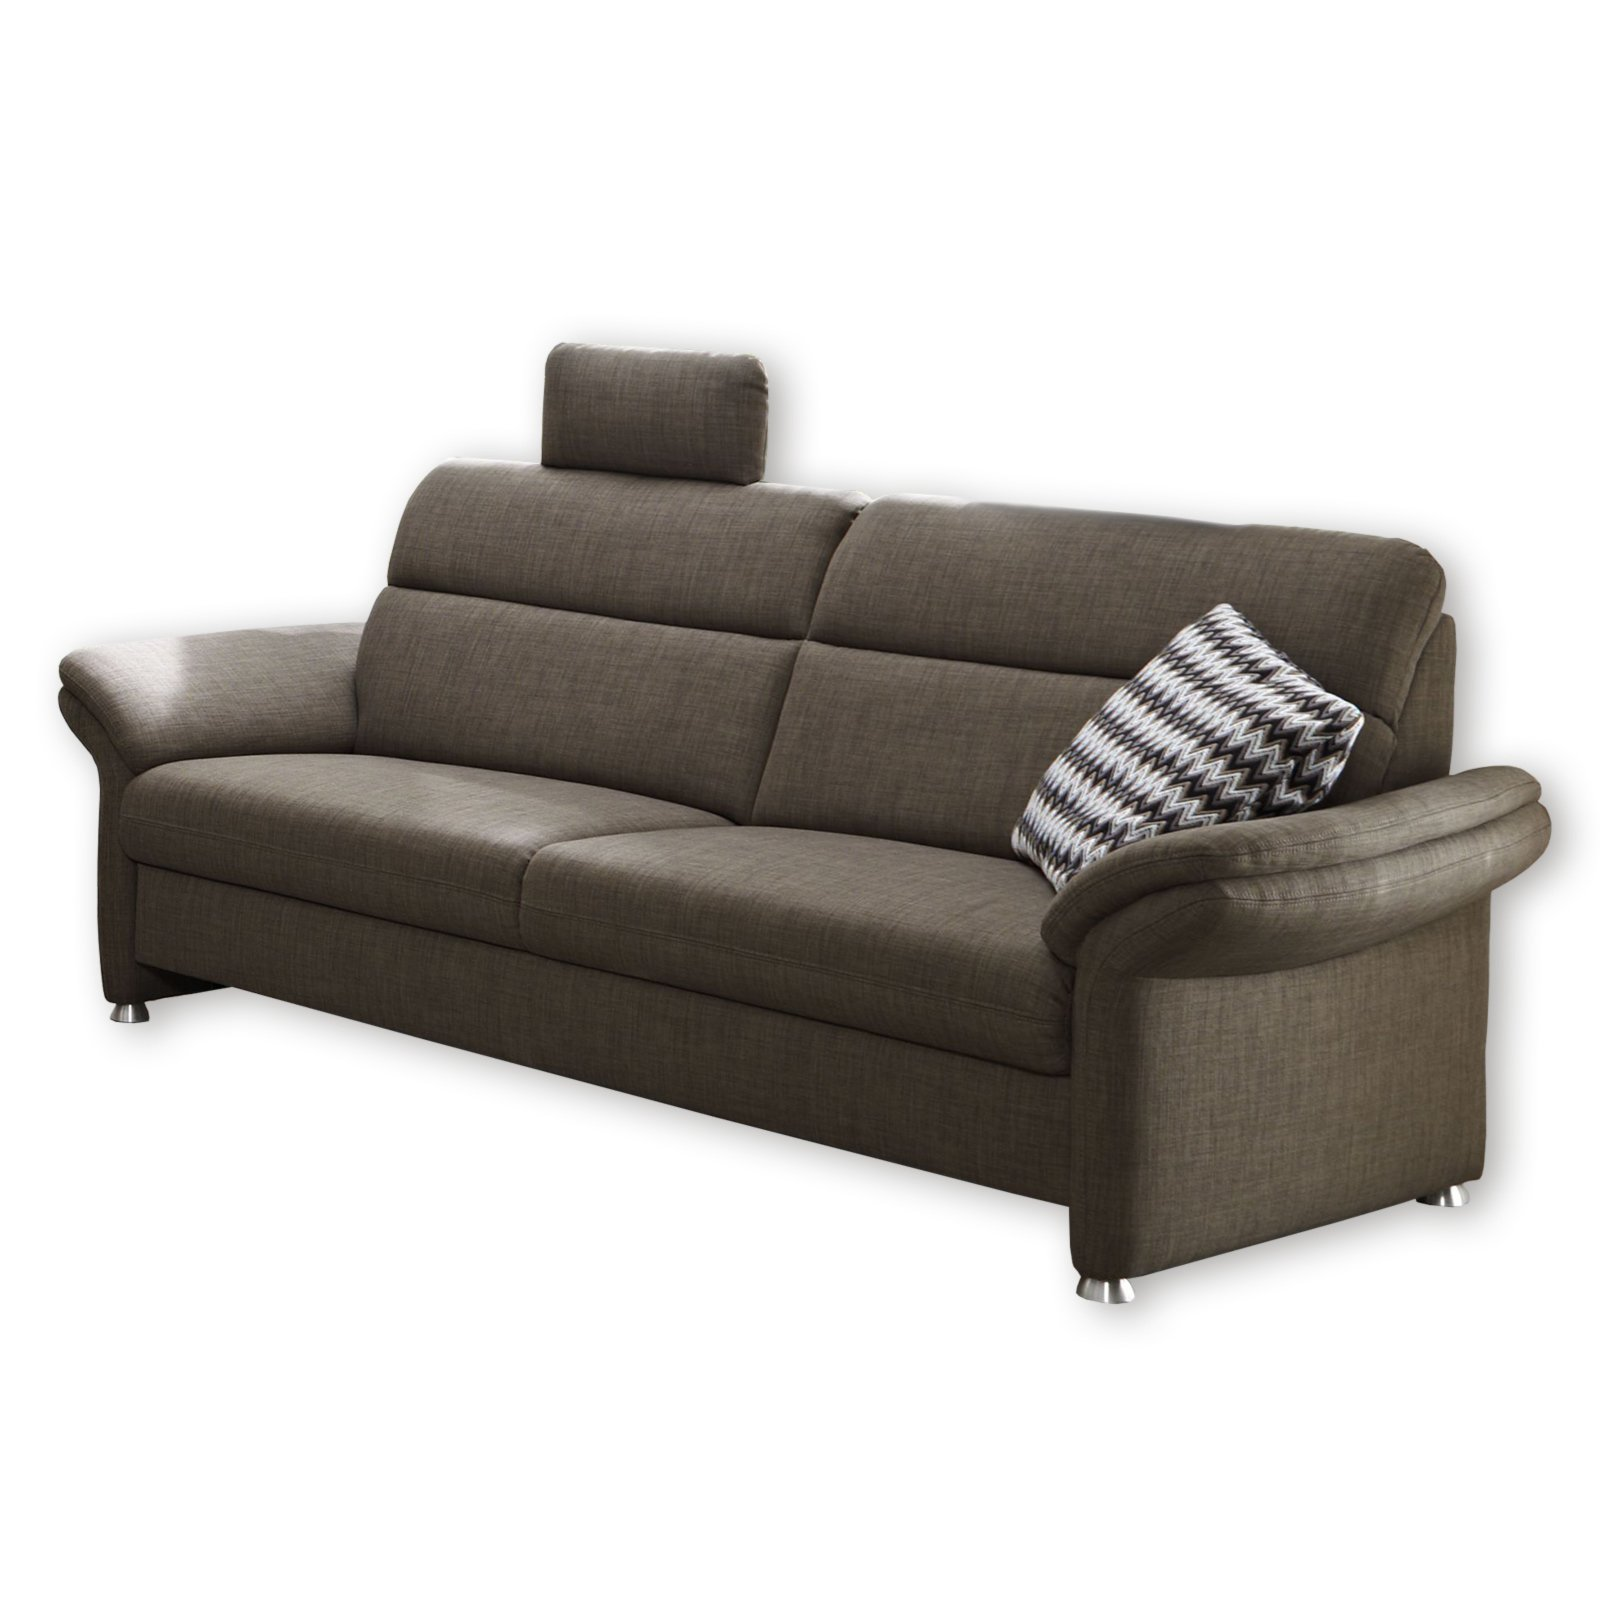 roller 3 sitzer sofa grau mit relaxfunktion ebay. Black Bedroom Furniture Sets. Home Design Ideas